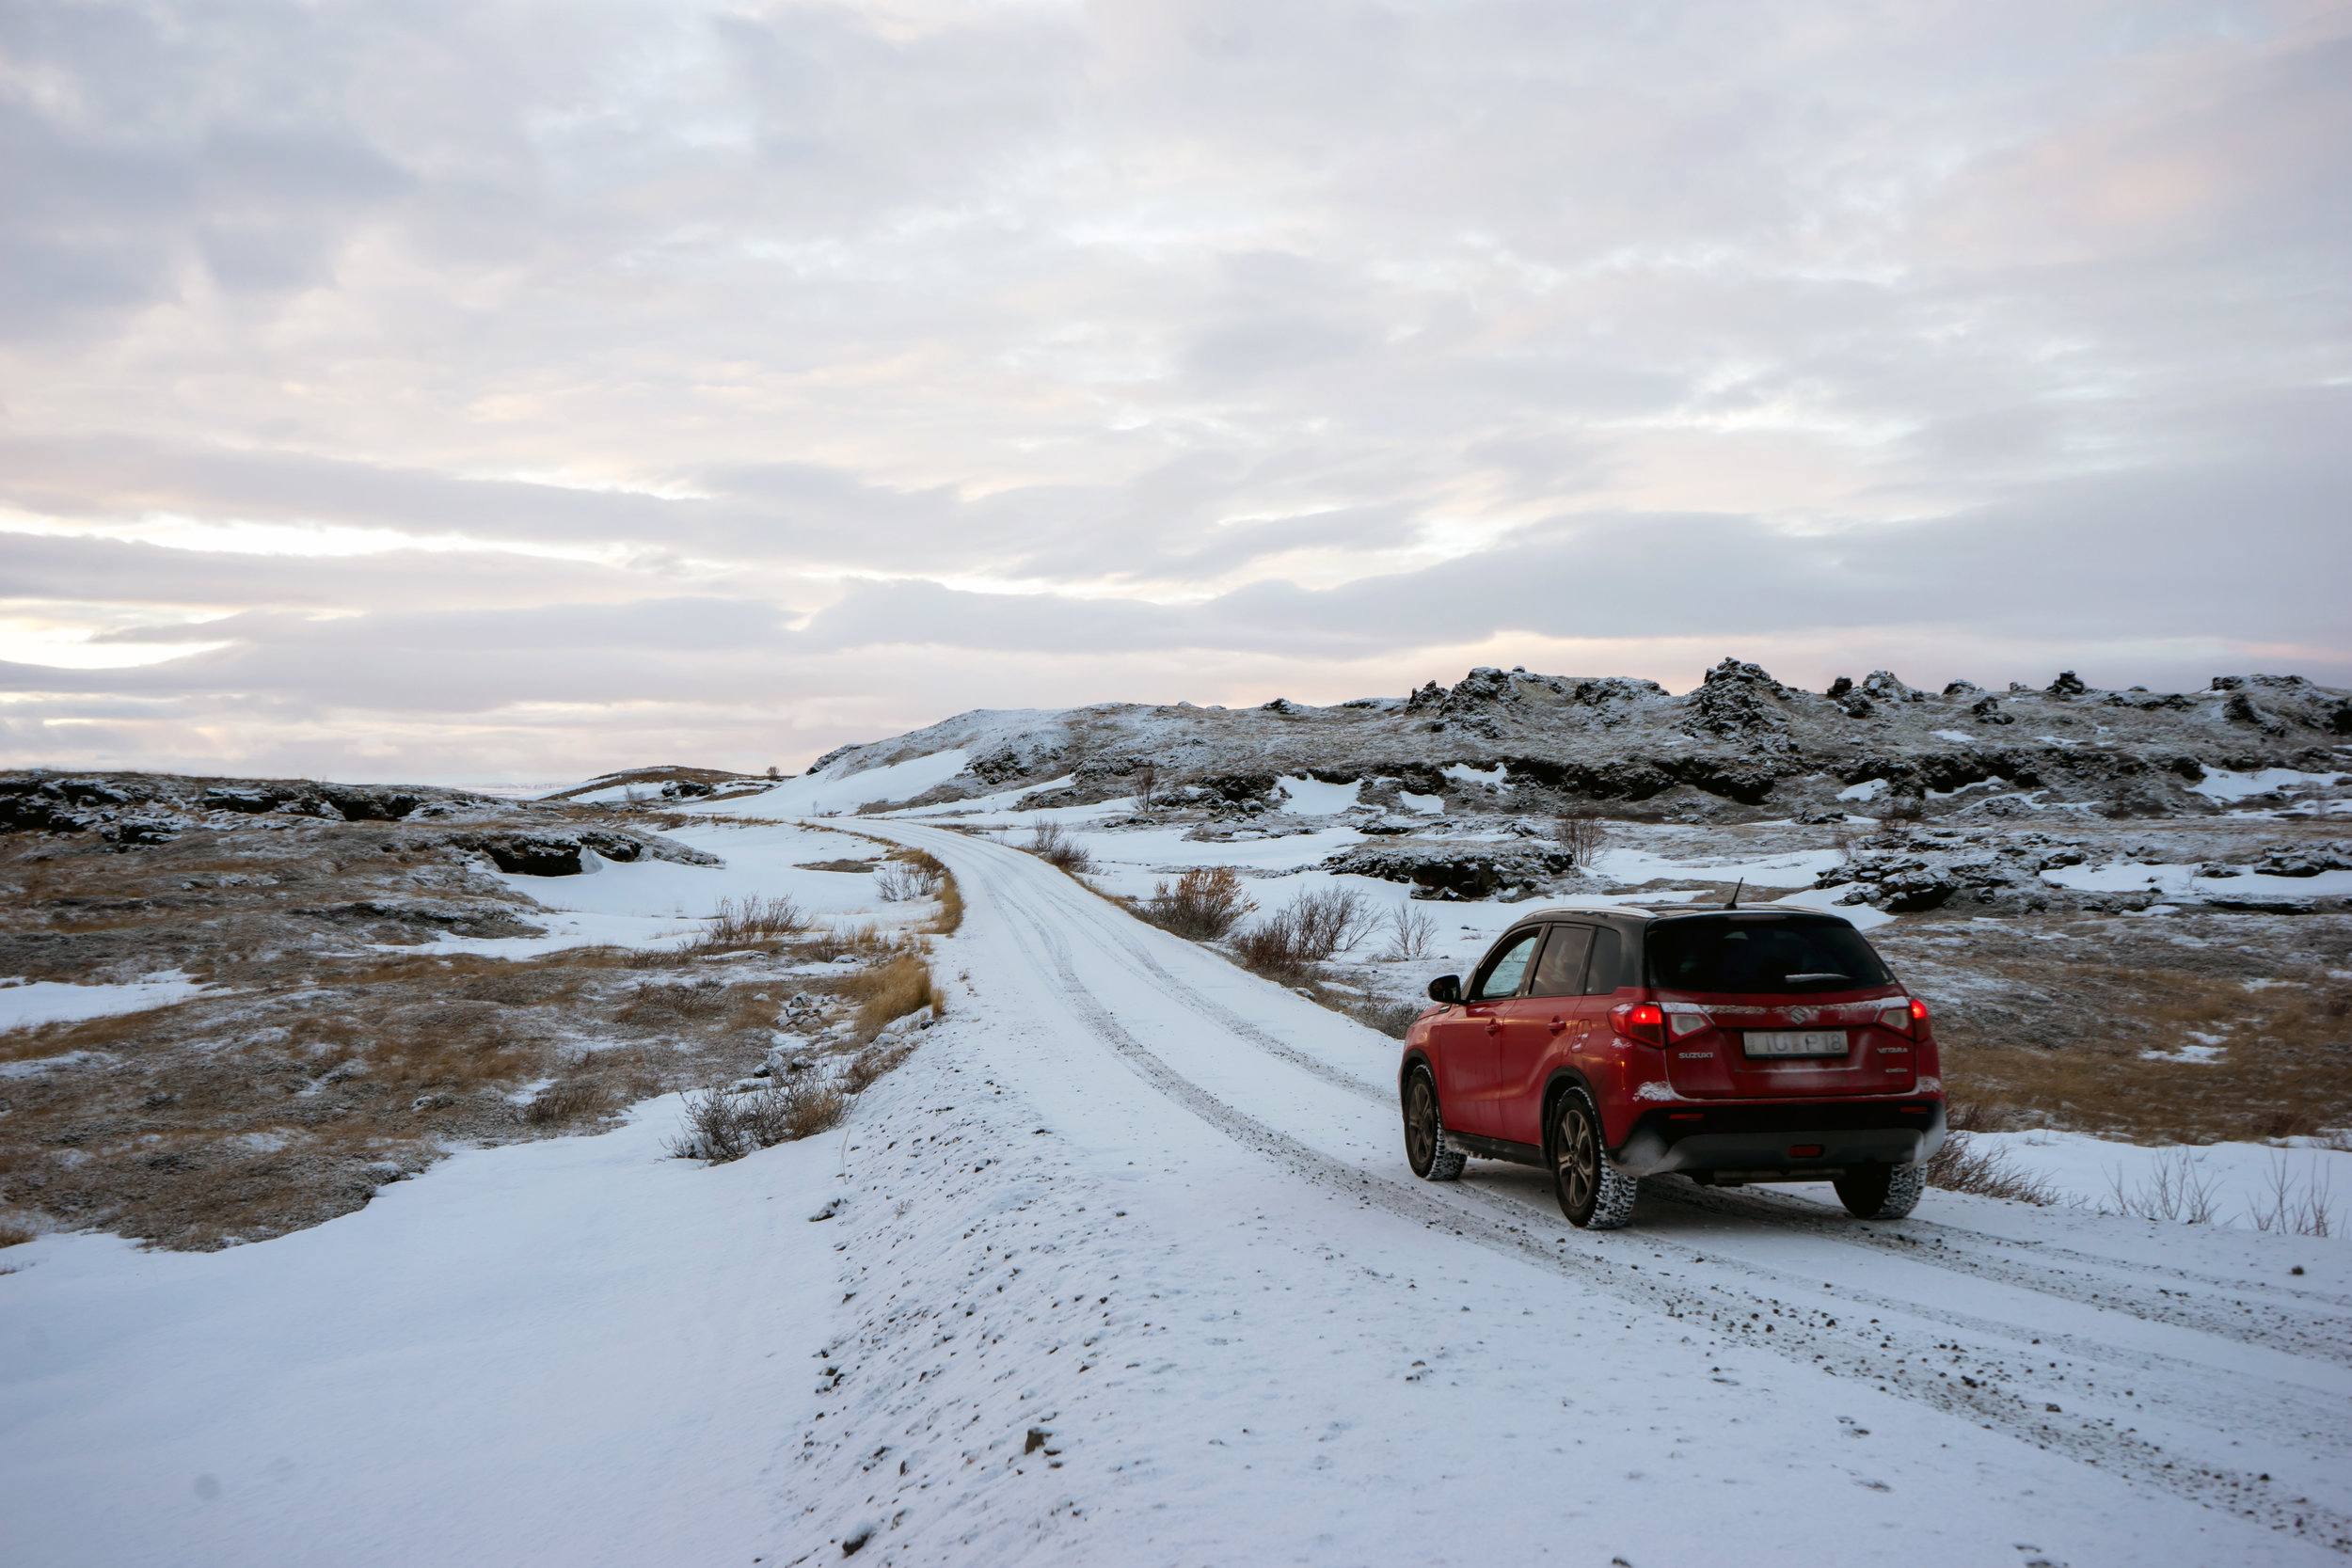 Maggie a la Mode - 9 Things No One Tells You About Roadtripping in Iceland